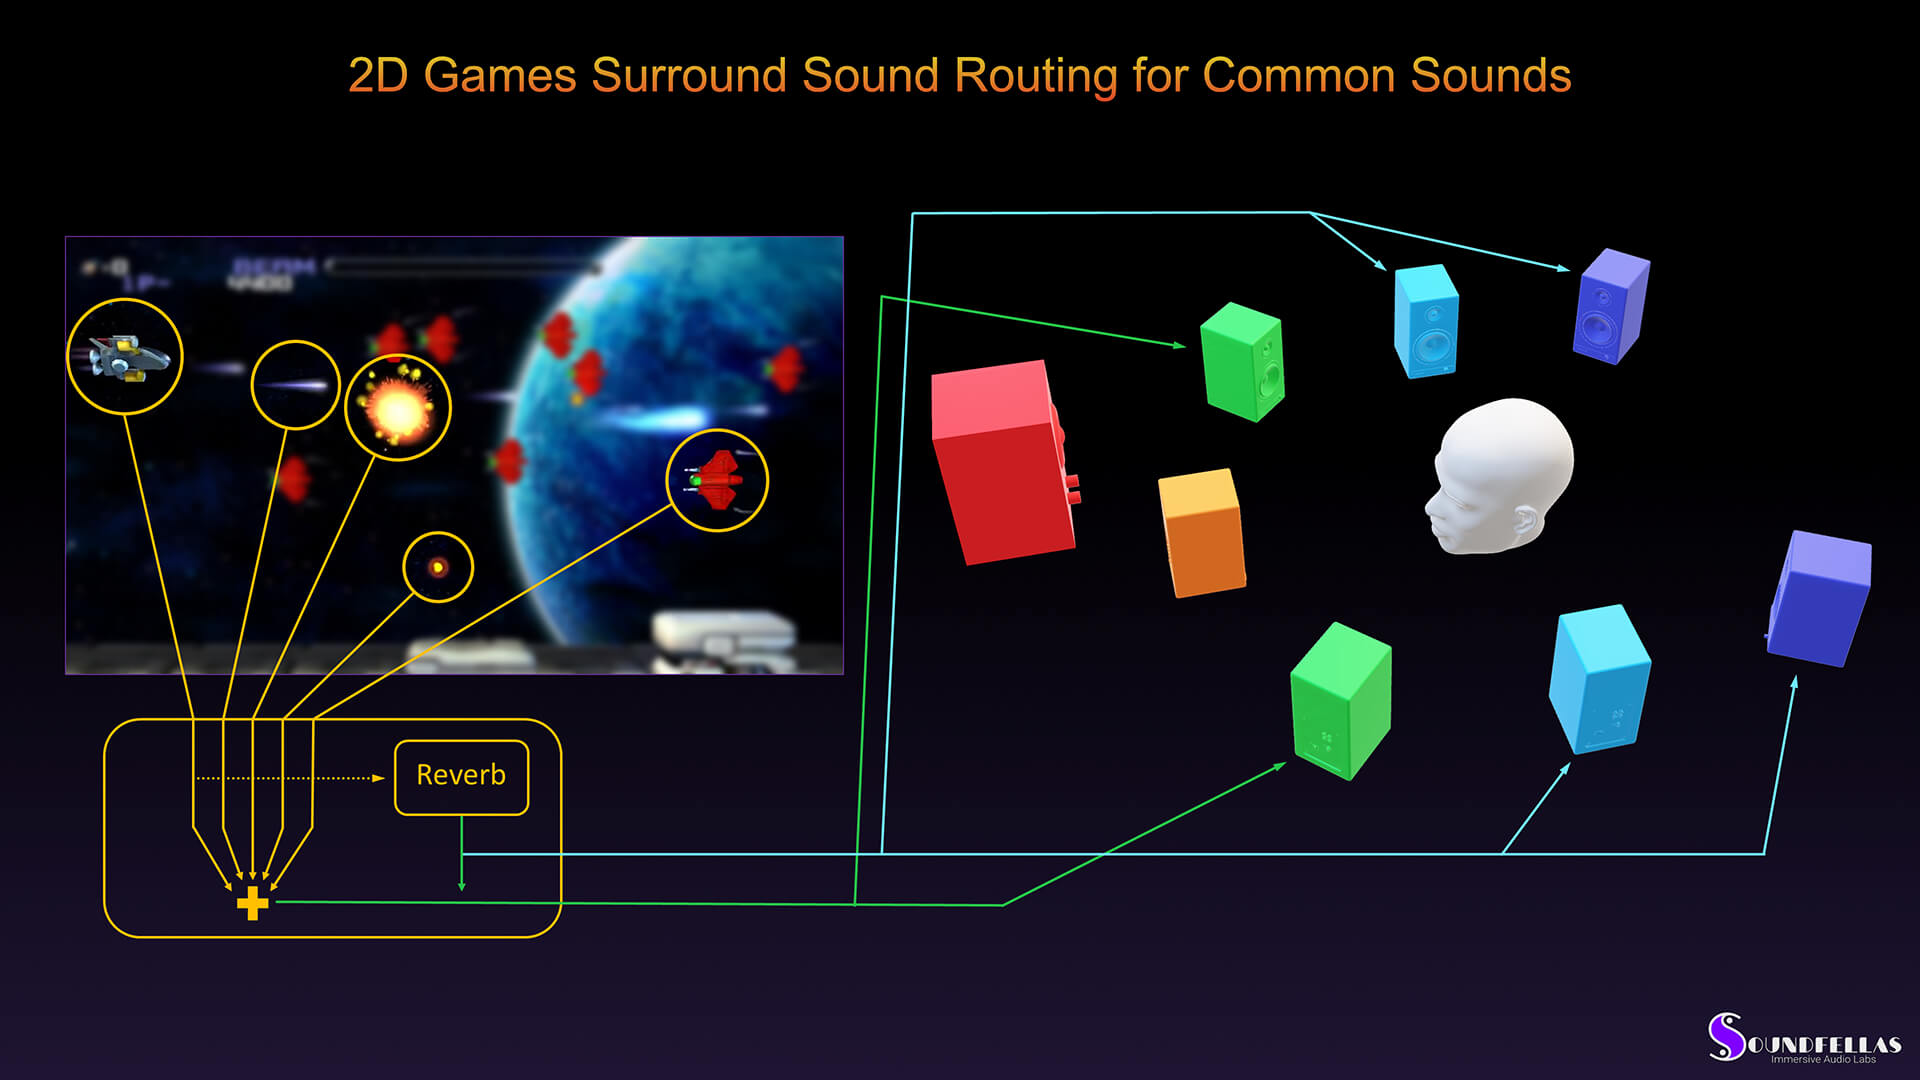 Image of 2D game surround sound routing for common sounds.